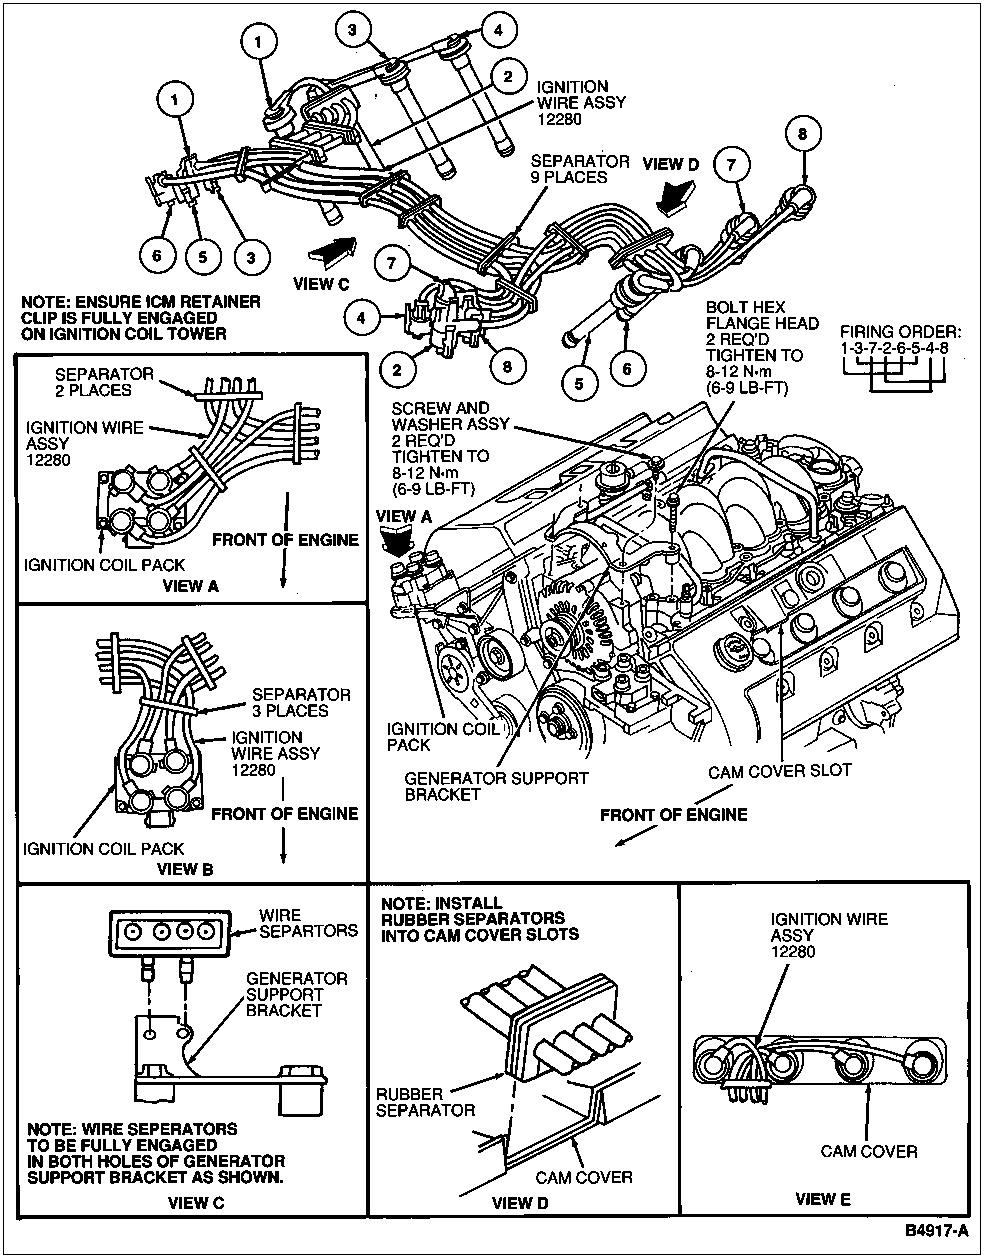 coil pack wiring diagram for 1998 ford f150 4 6l